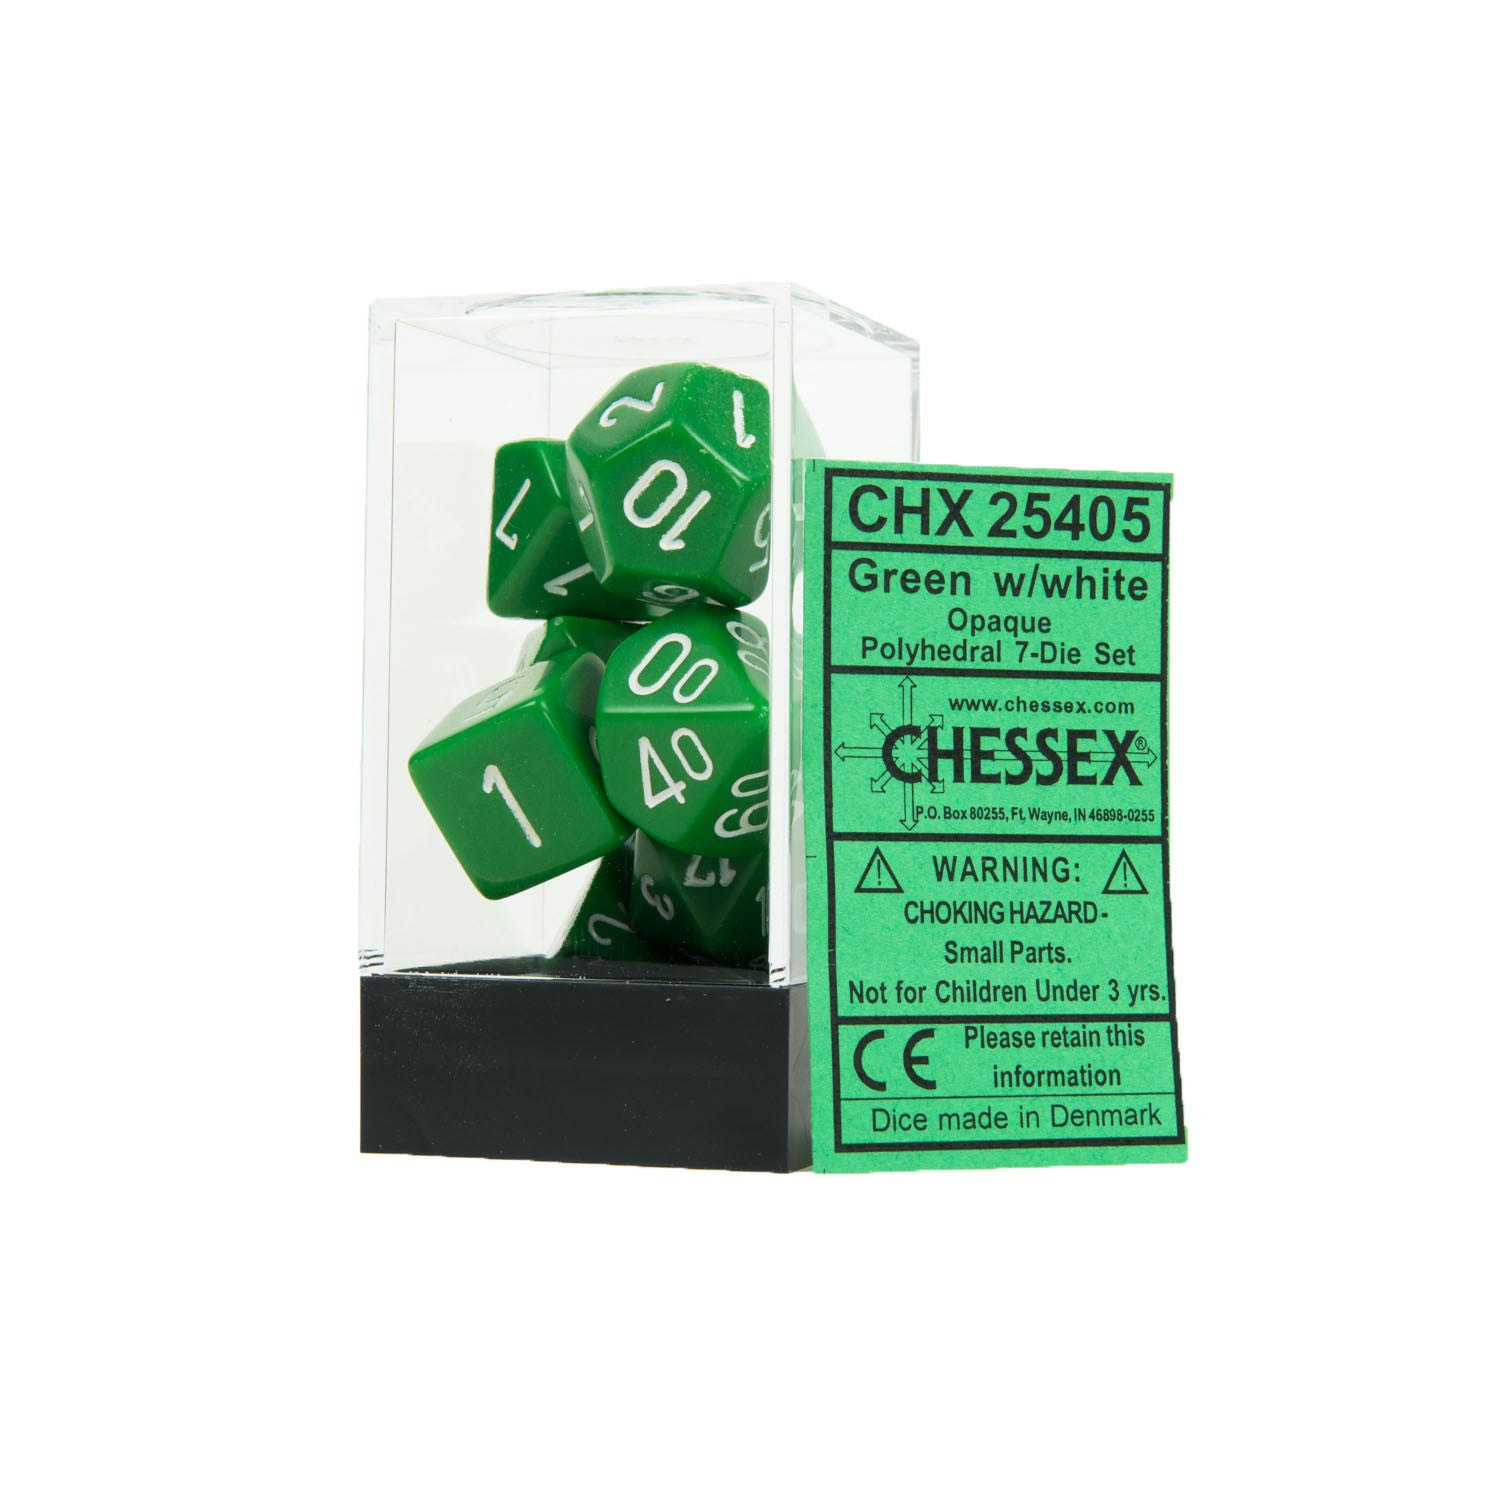 Chessex CHX25405 Opaque Green w/white Polyhedral Dice Set